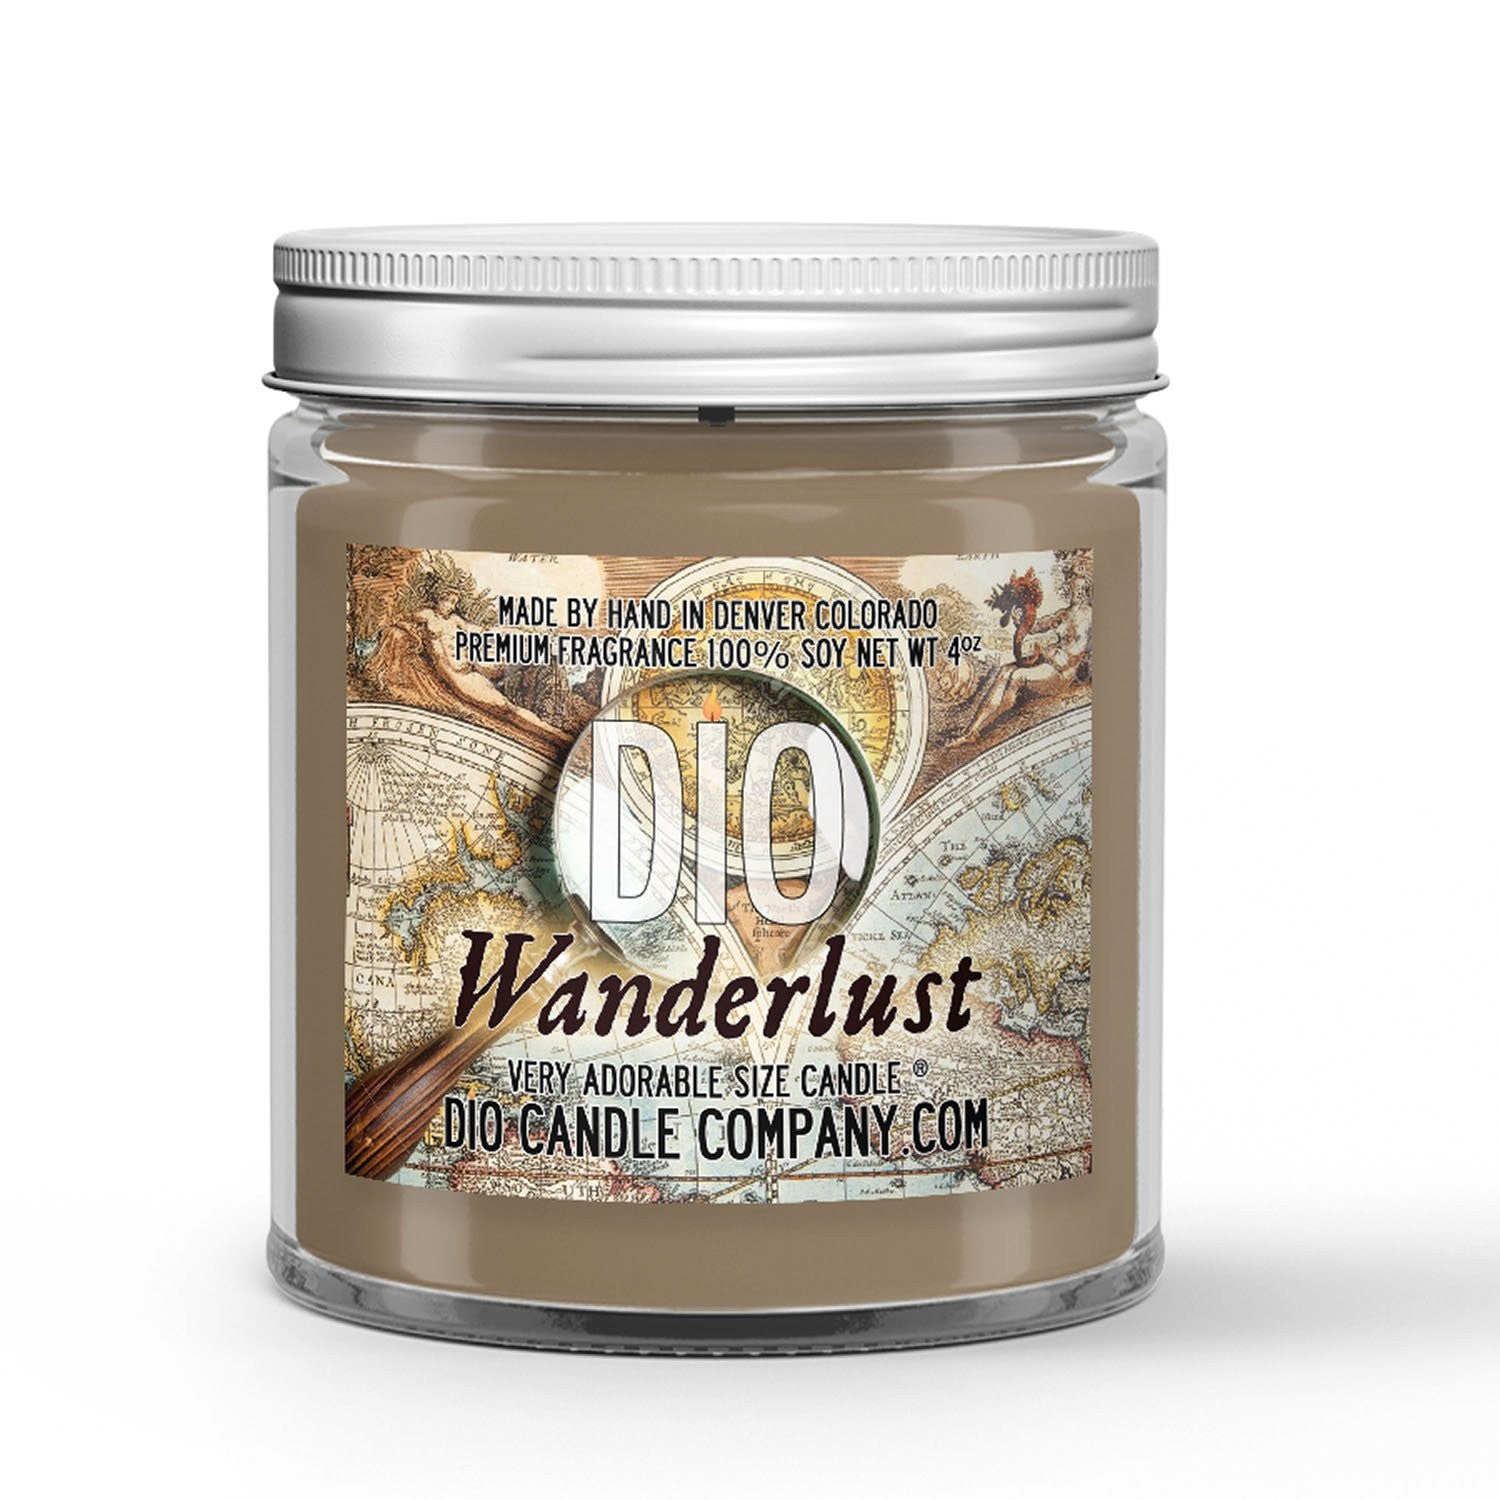 Wanderlust Candle Leather - Vanilla - Smoke Scented - Dio Candle Company